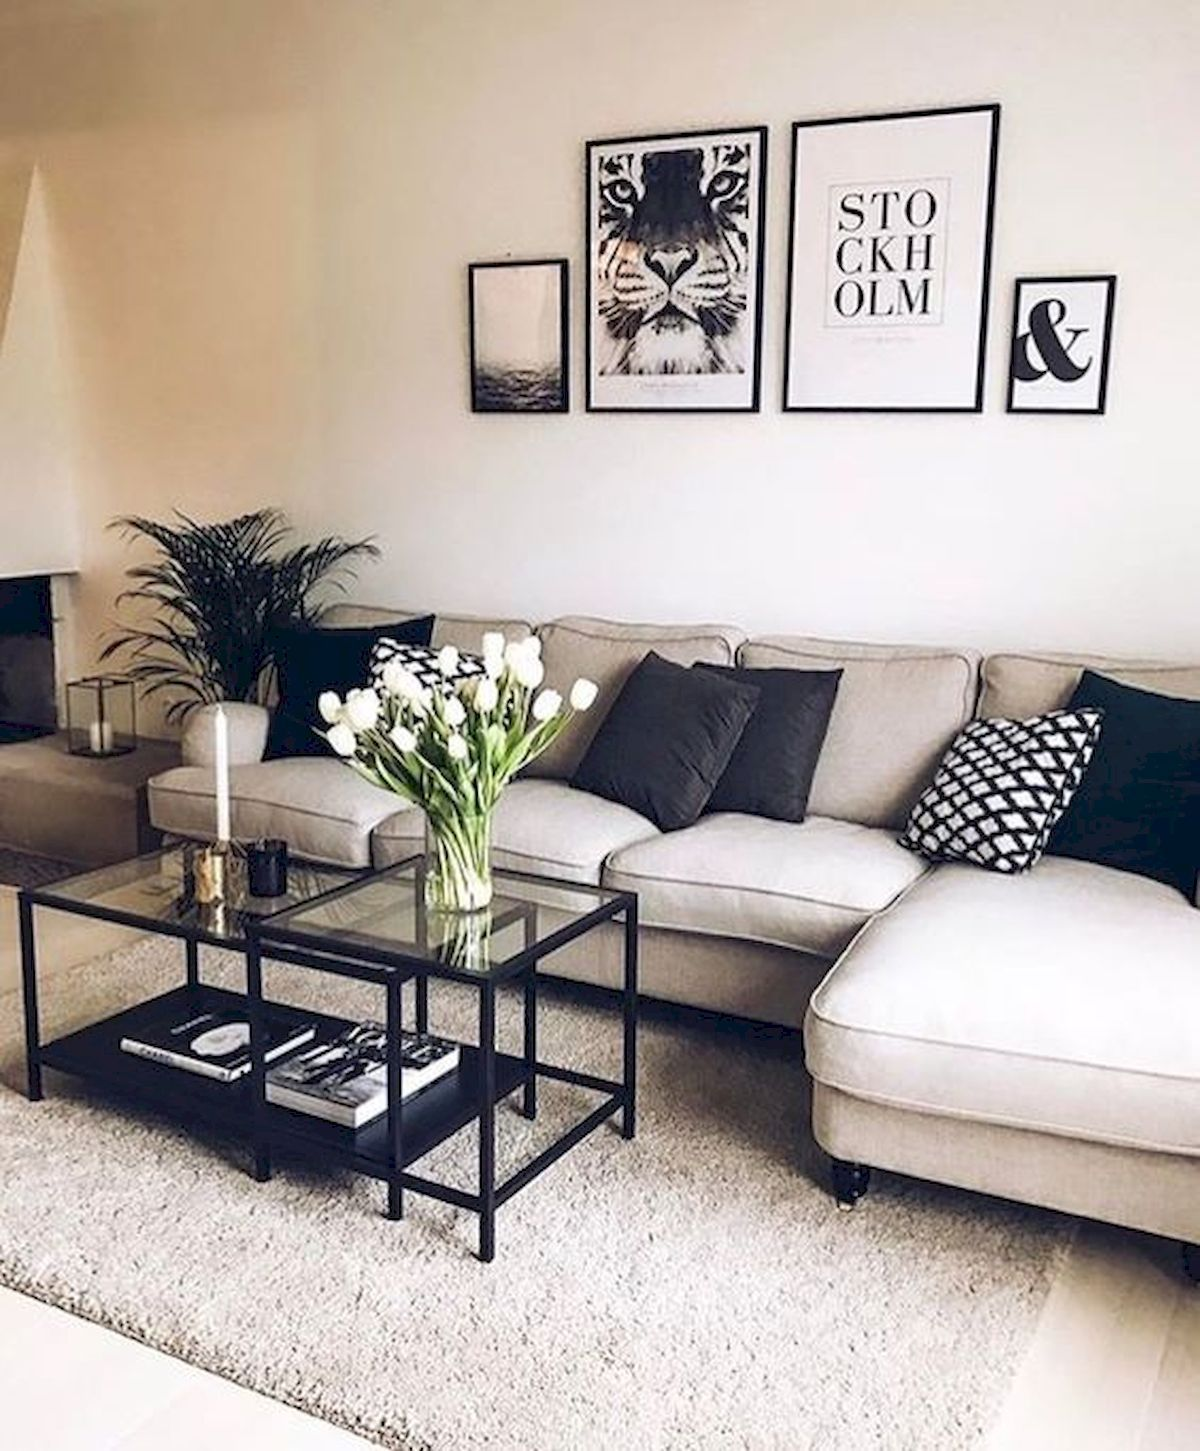 2019 Best Living Room Wall Art Ideas And Decorations 35